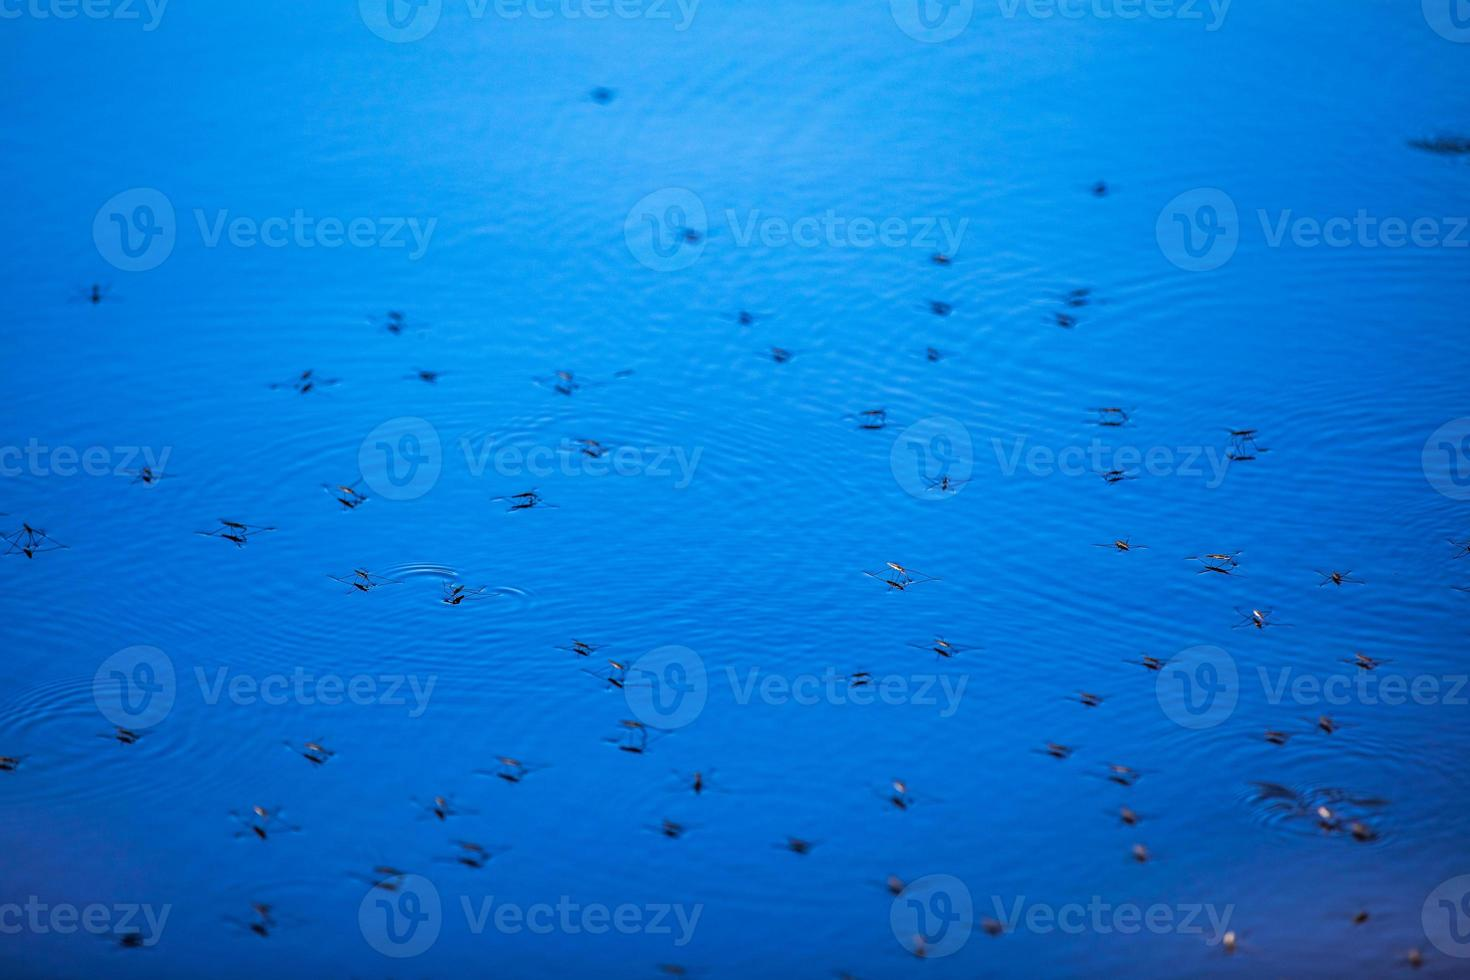 Mosquitoes on the surface of the blue water photo